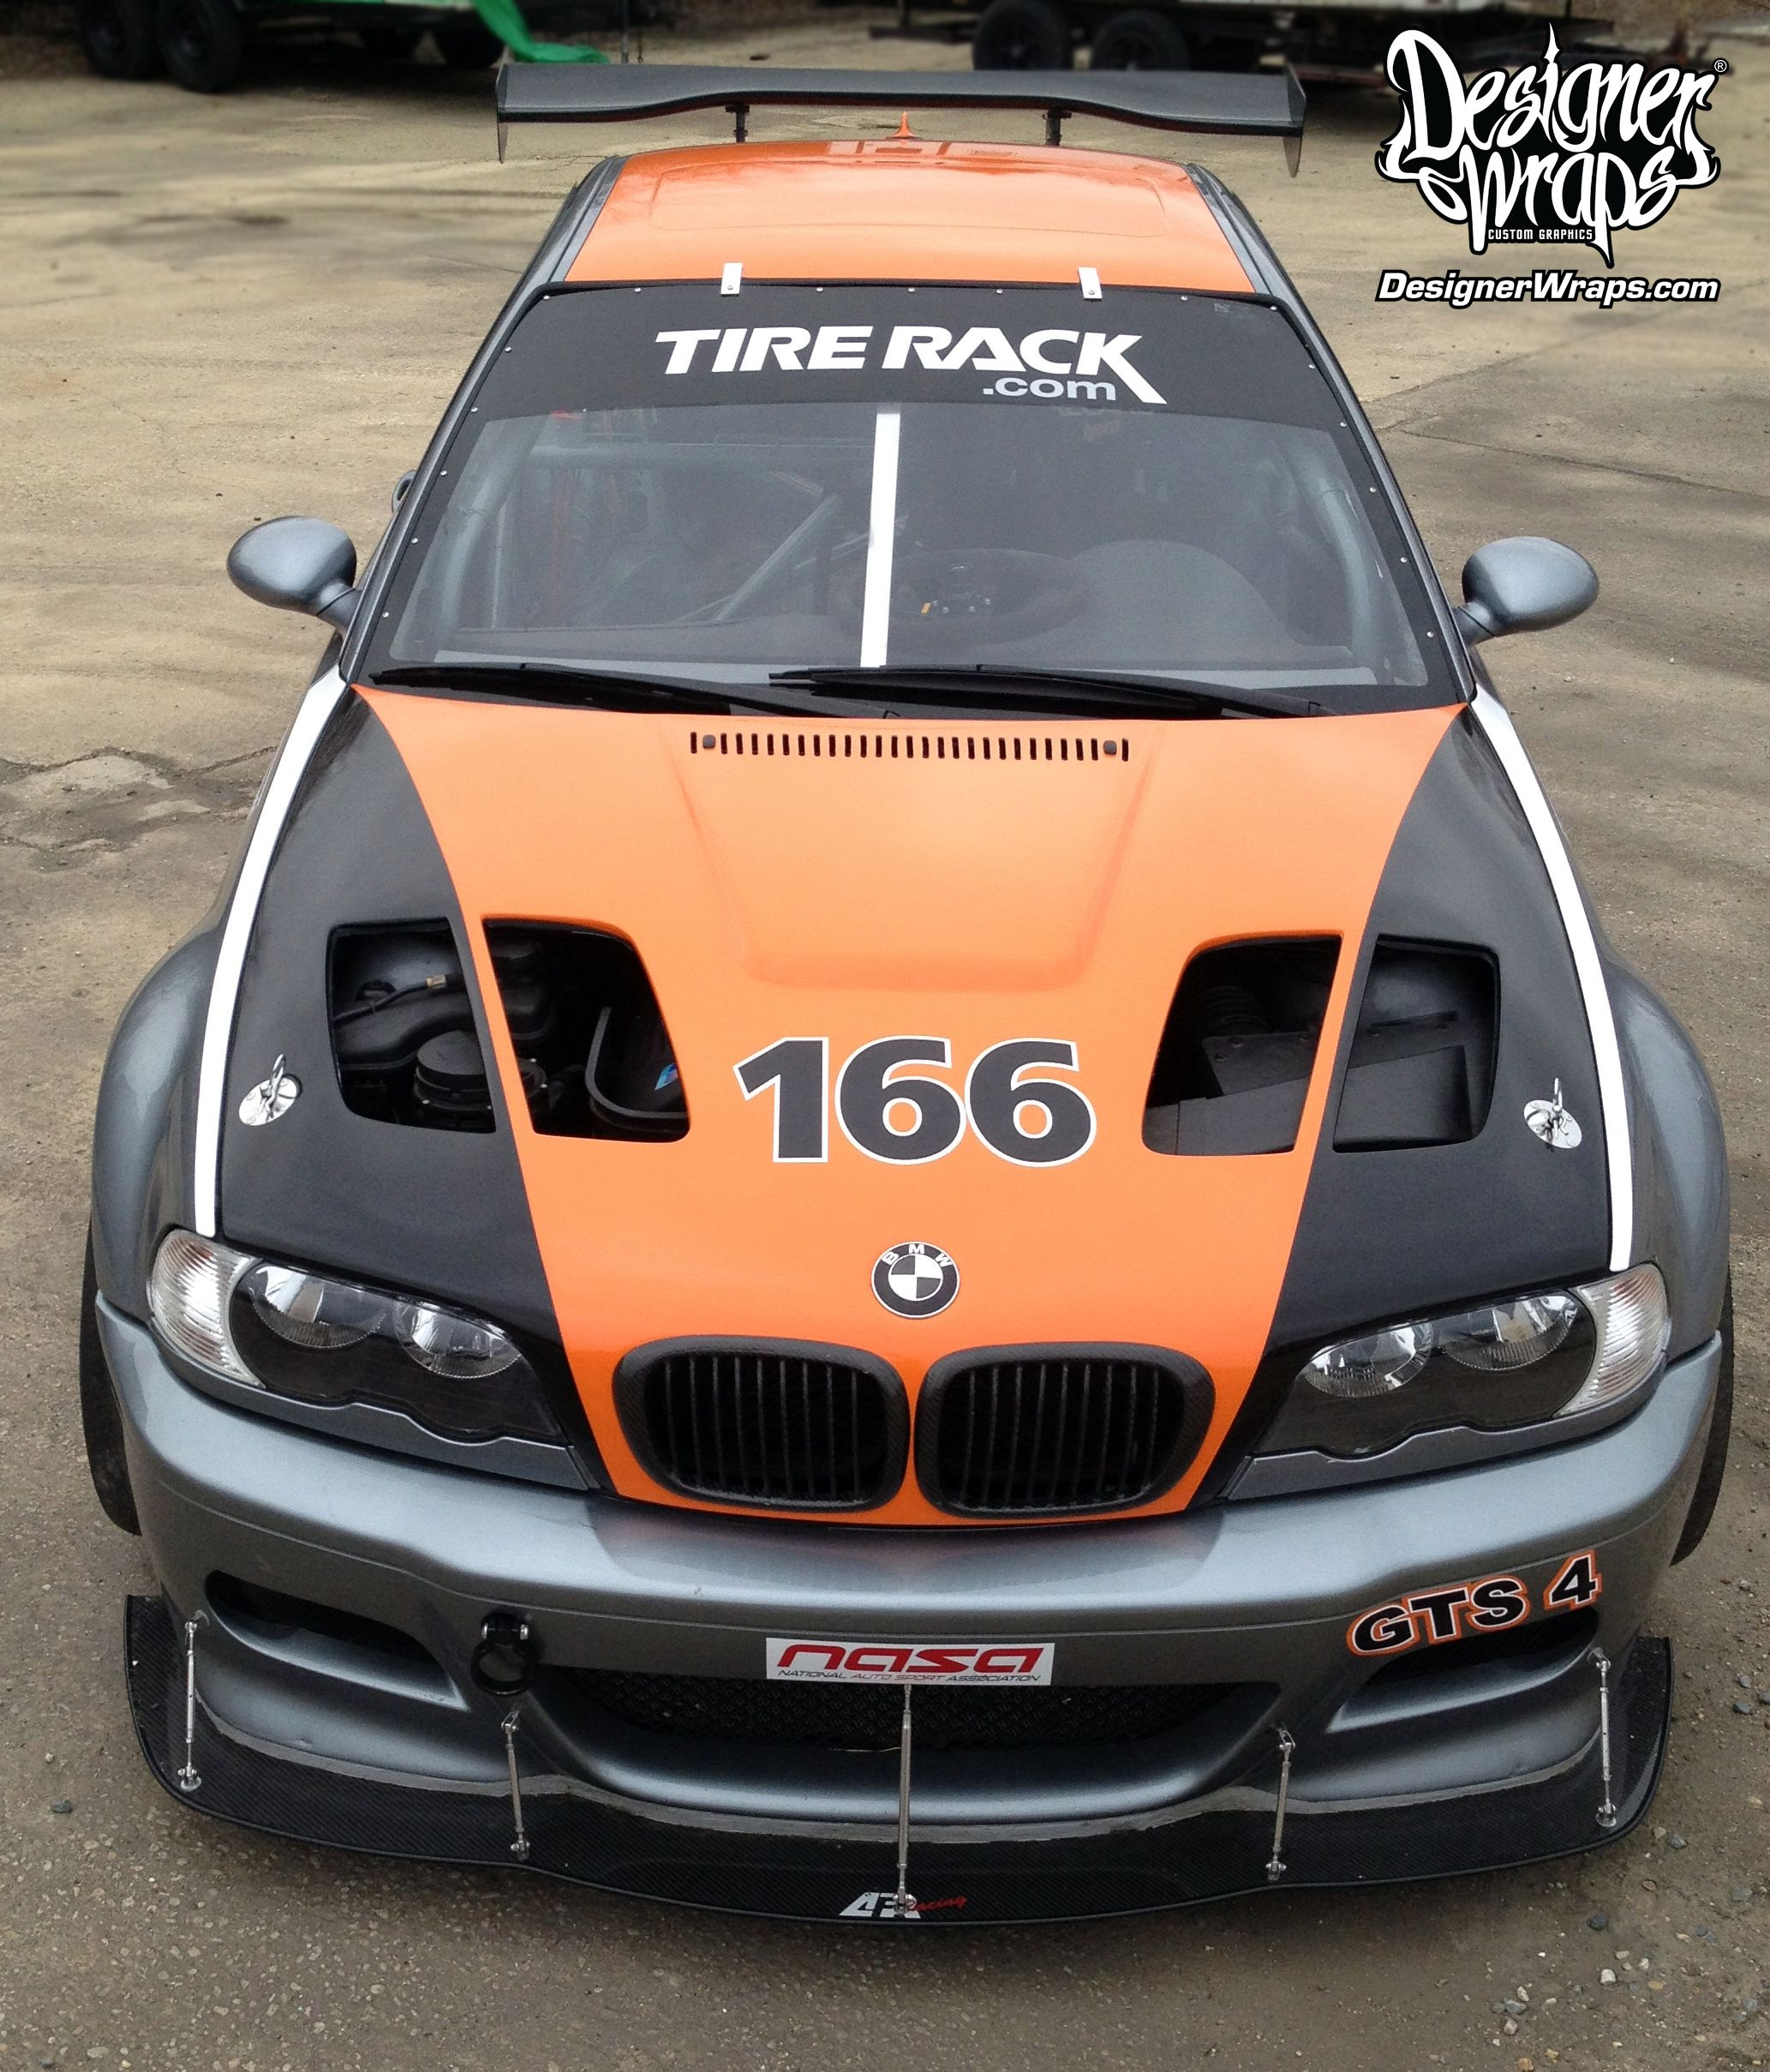 BMW Trailer Racing Graphics BMW M Race Car Trailer - Vinyl decals for race carsbmw race car wraps by graphios